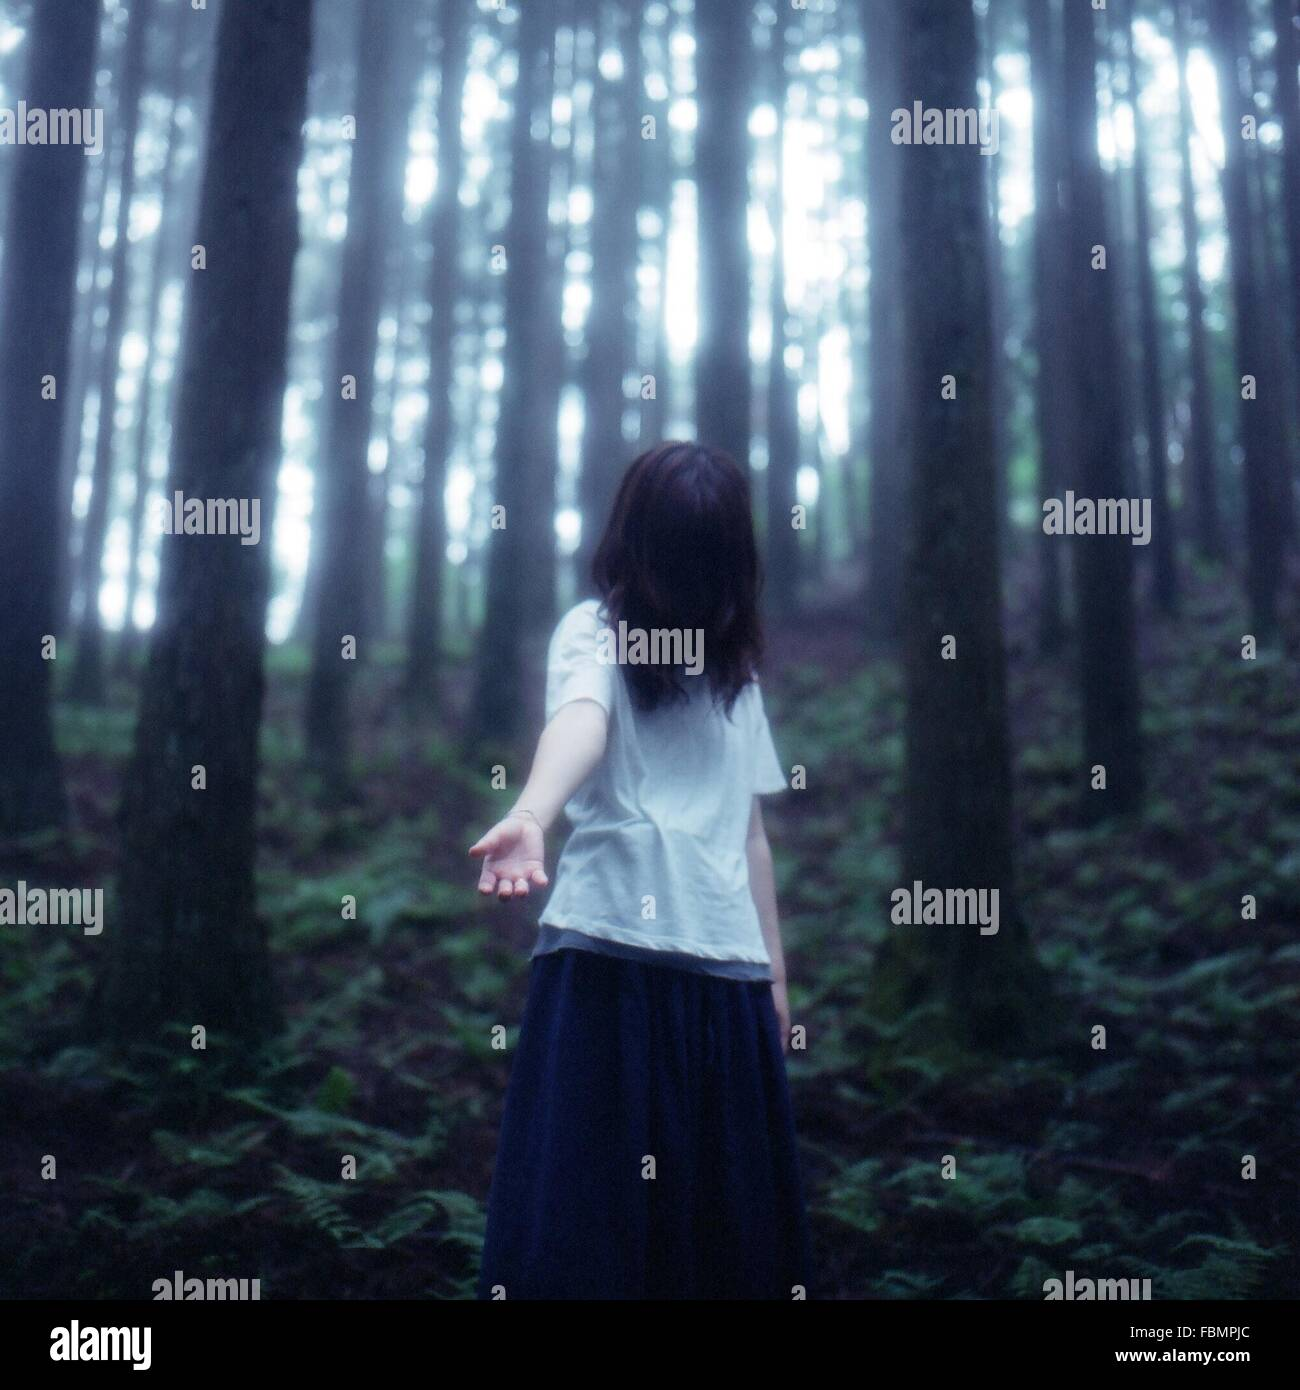 Lone Woman In Forest - Stock Image